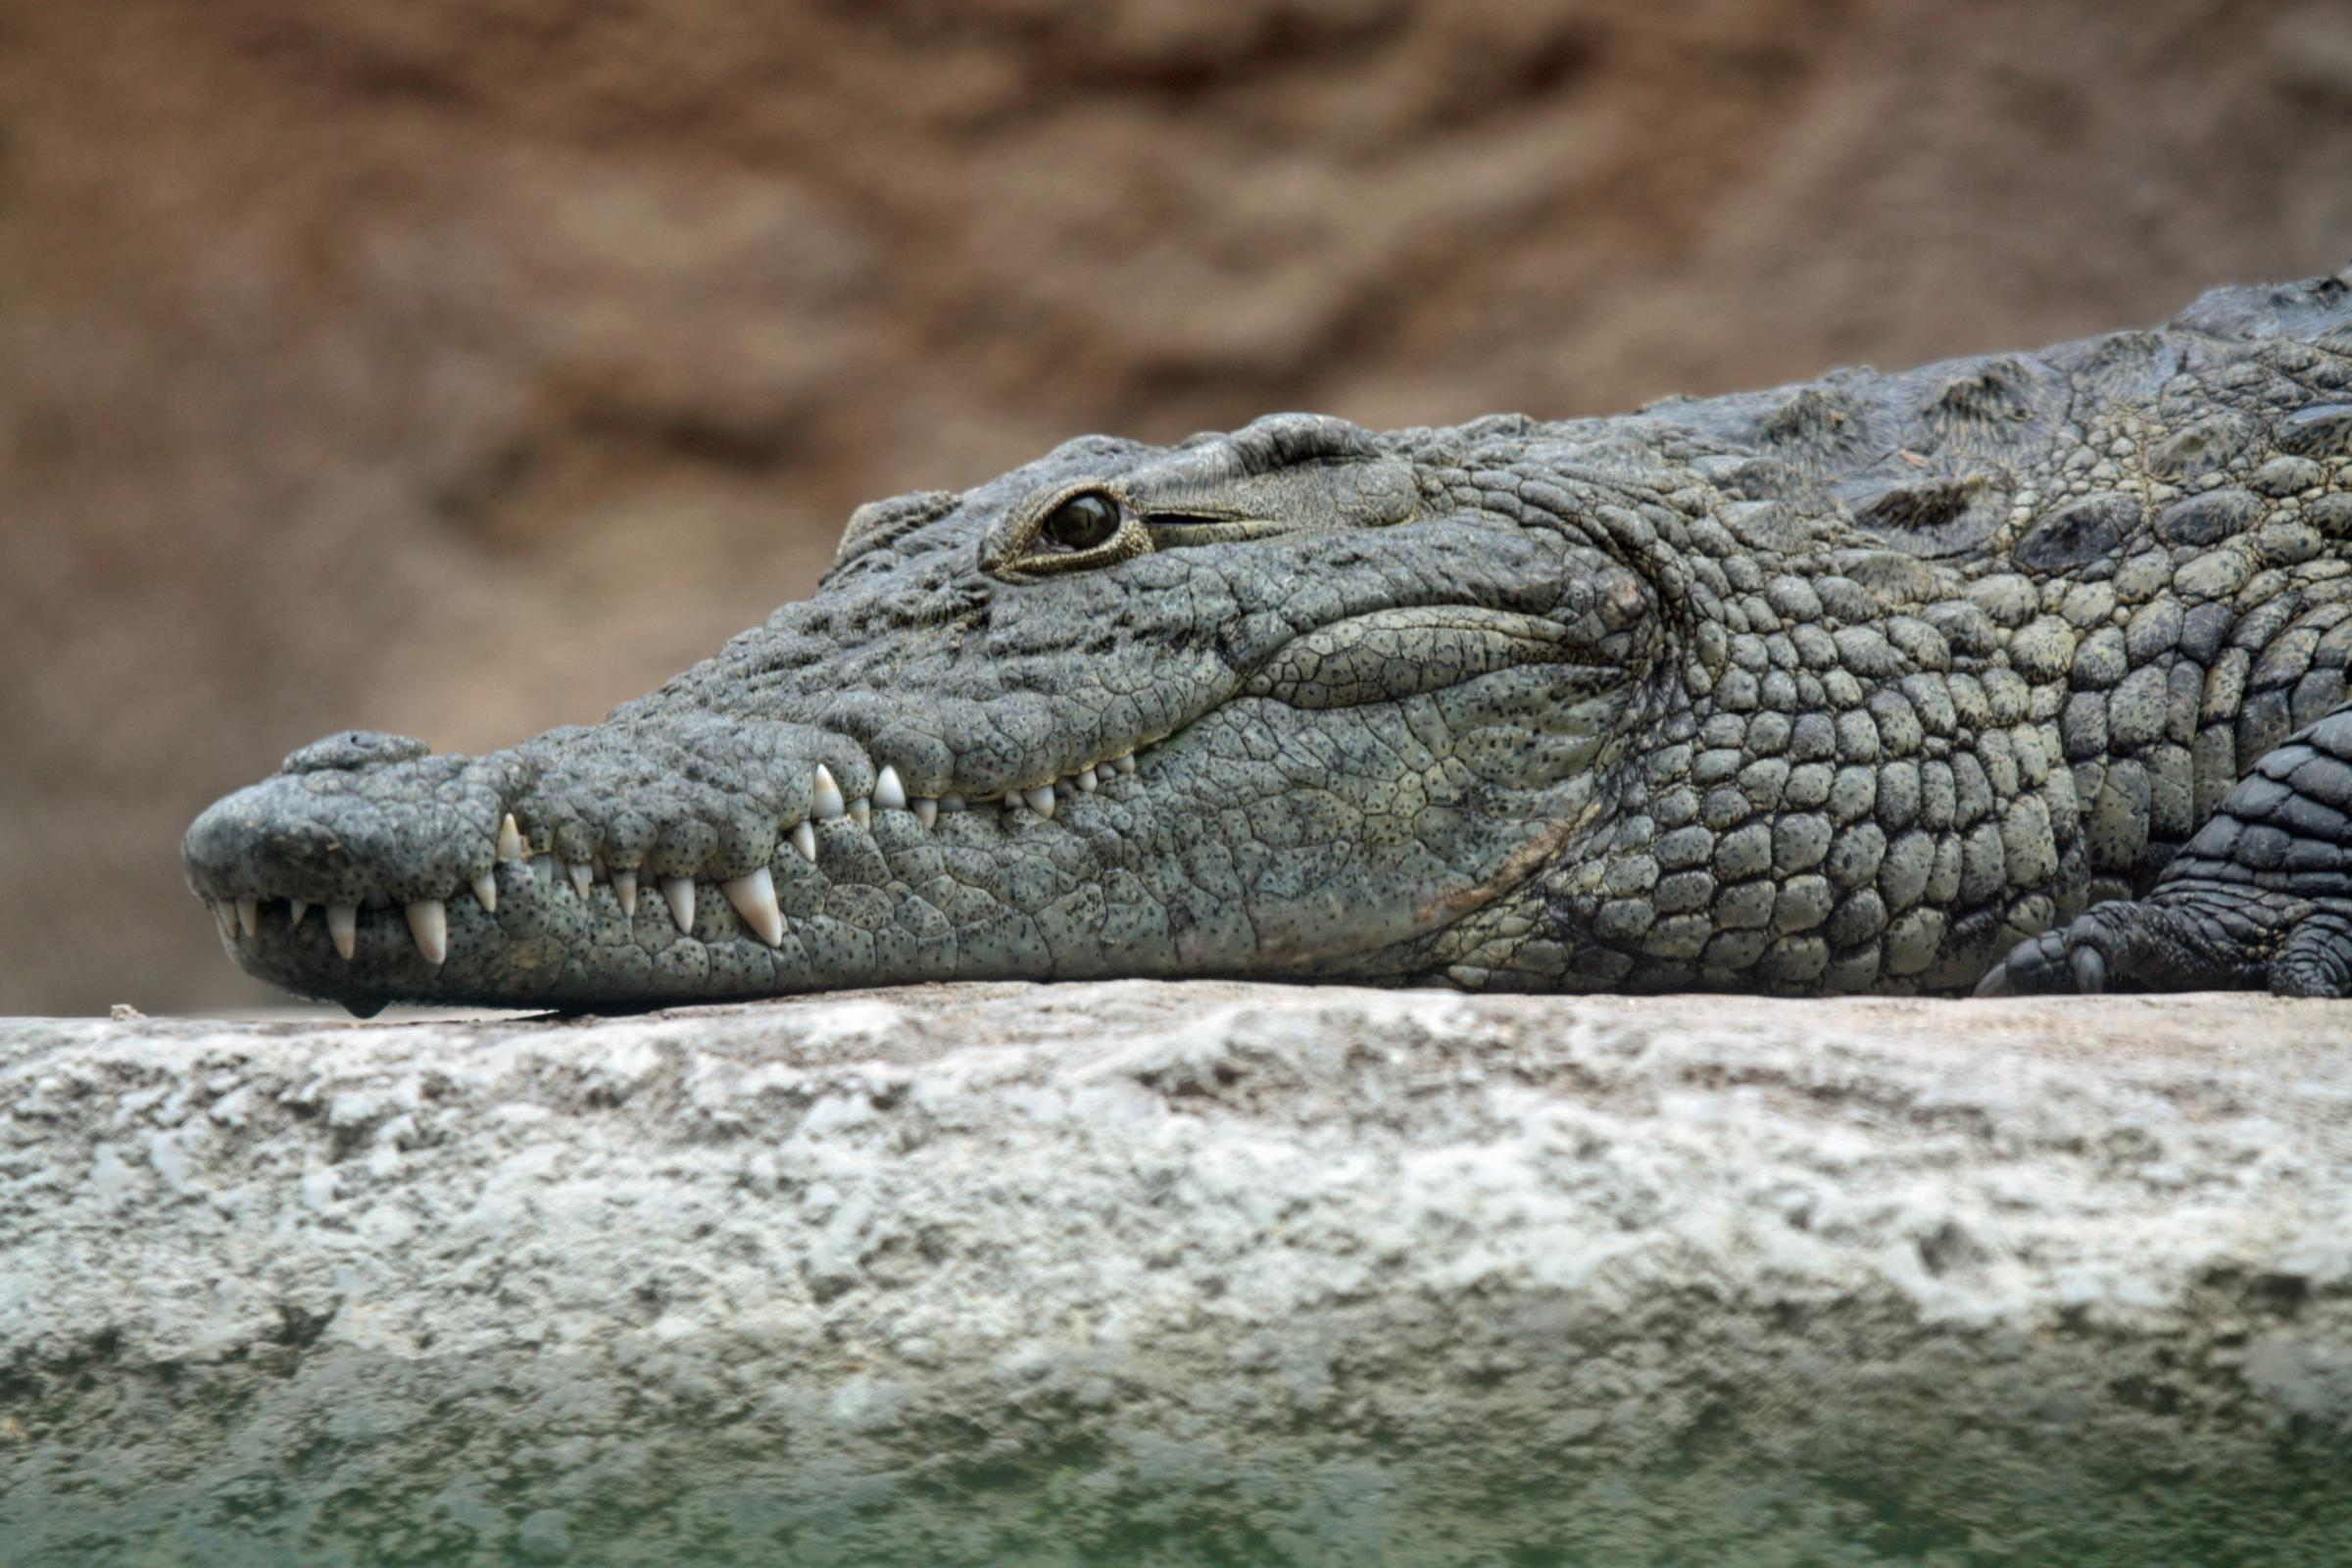 Coming soon, crocodiles in the Clyde?